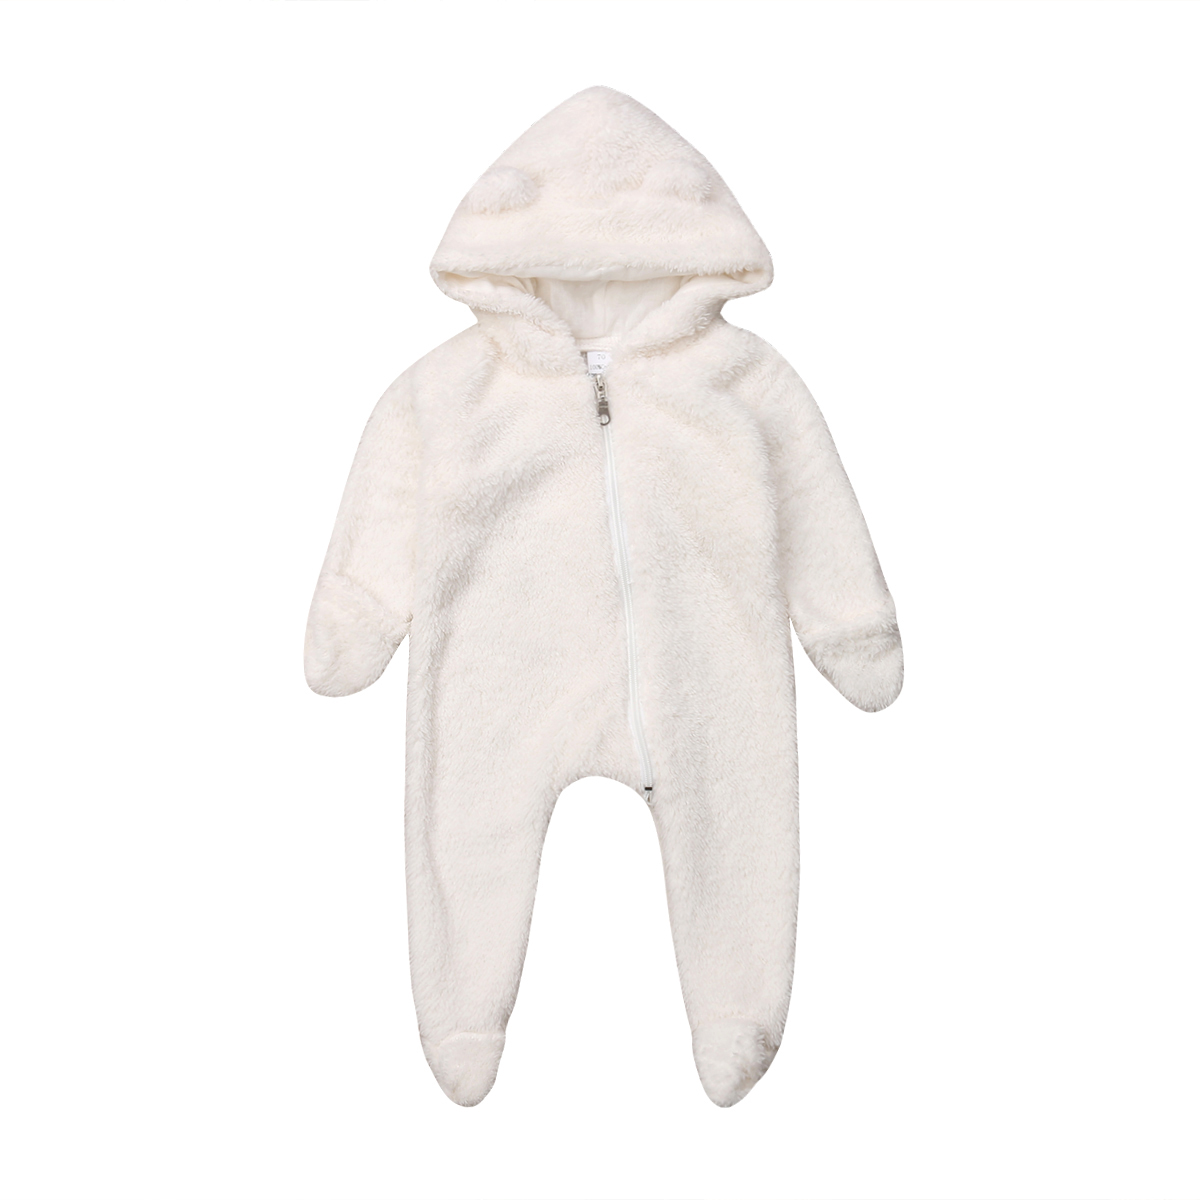 Newborn Baby Girl Boy Clothing Hooded Romper Long Sleeve Solid Warm Jumpsuit Winter Outfits Clothes Baby Boys Girls 0-24M